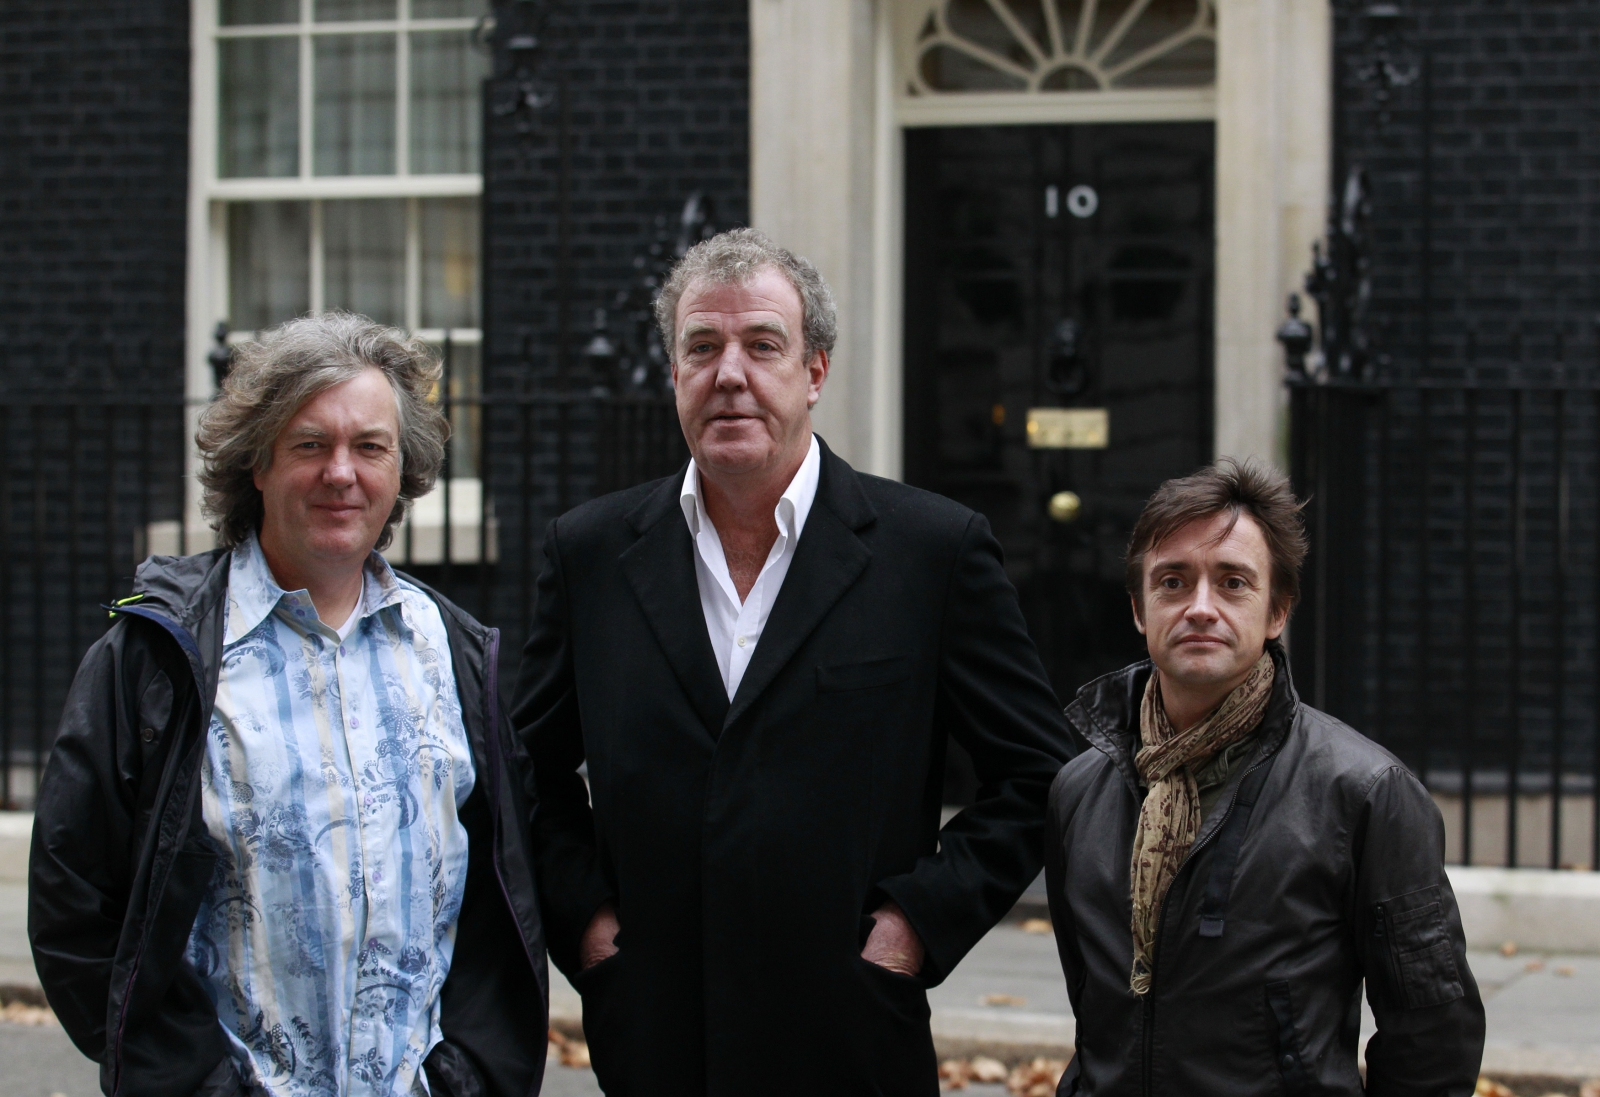 Jeremy Clarkson, Richard Hammond, James May